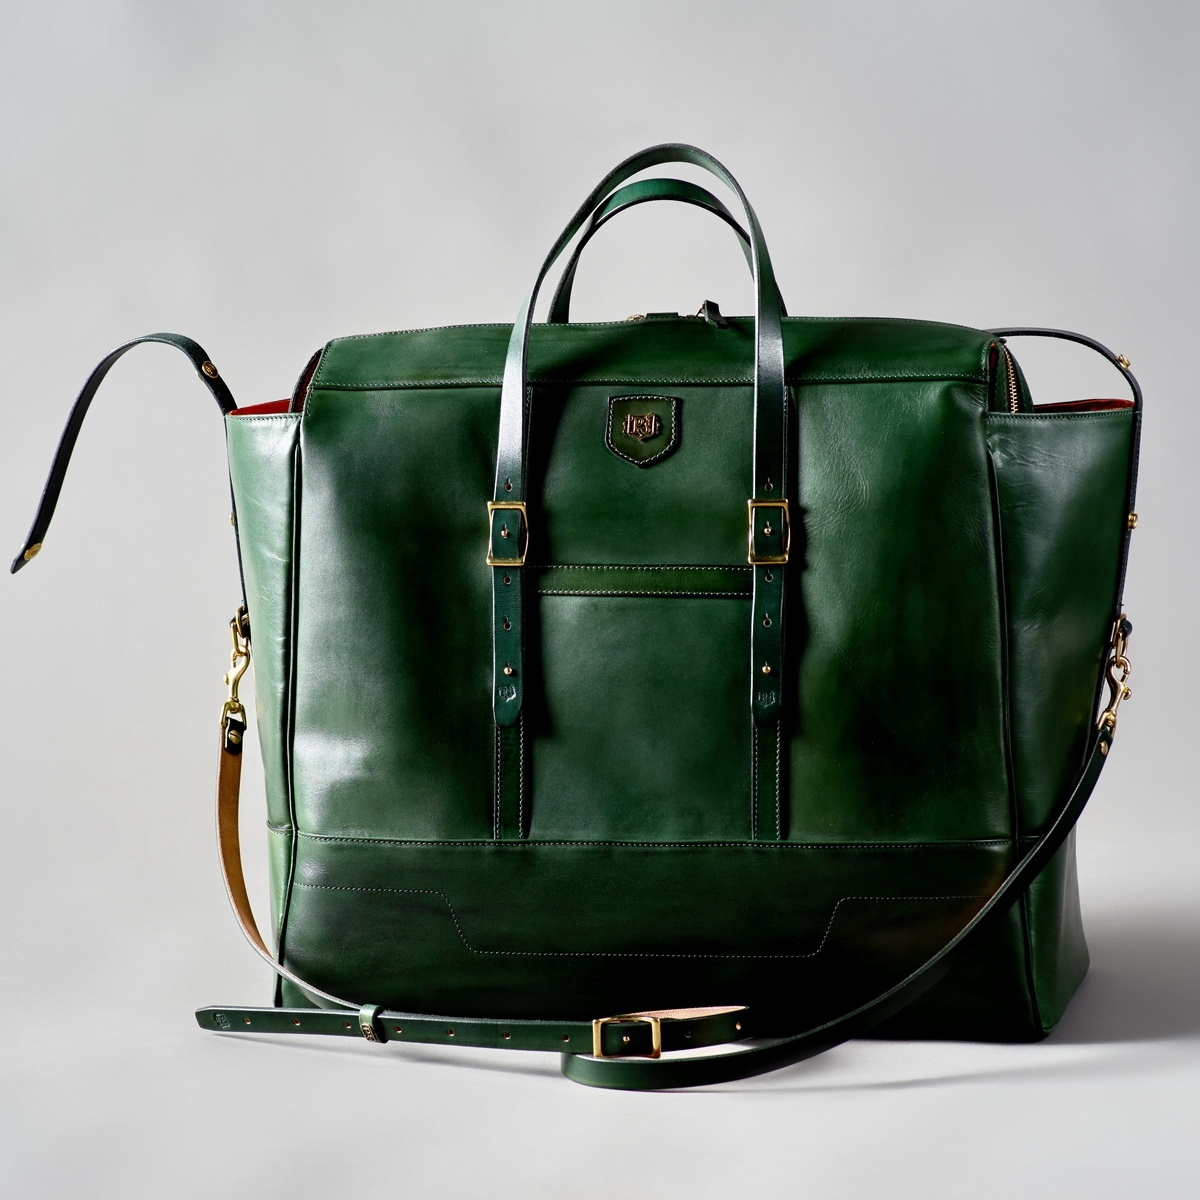 Travel bag WEEKENDER grassy green